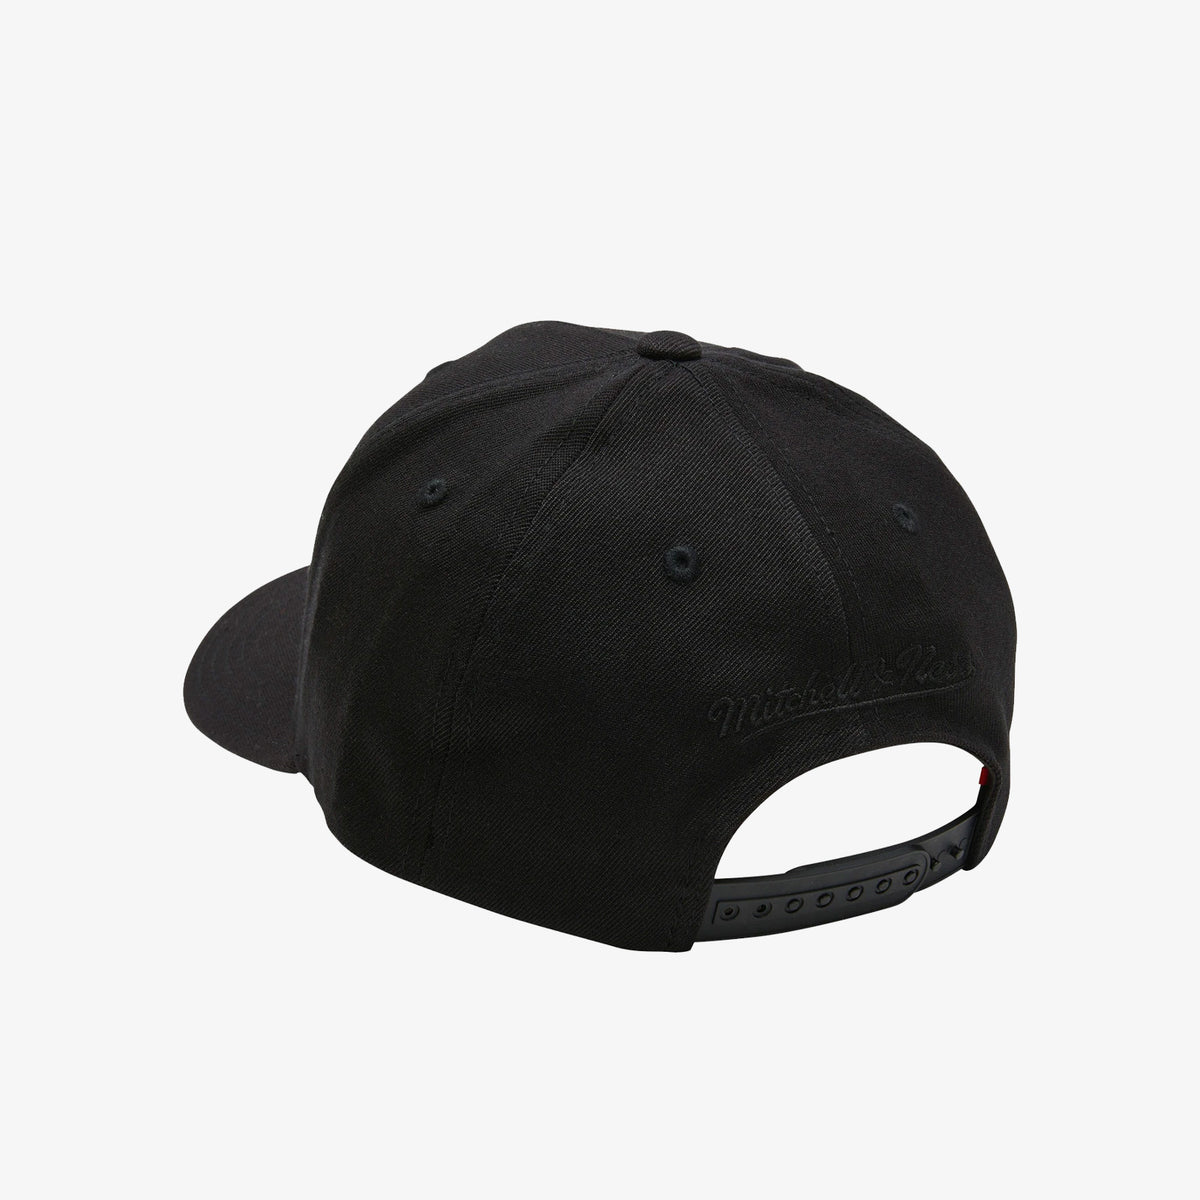 Los Angeles Clippers All Black Logo Classic Red Snapback